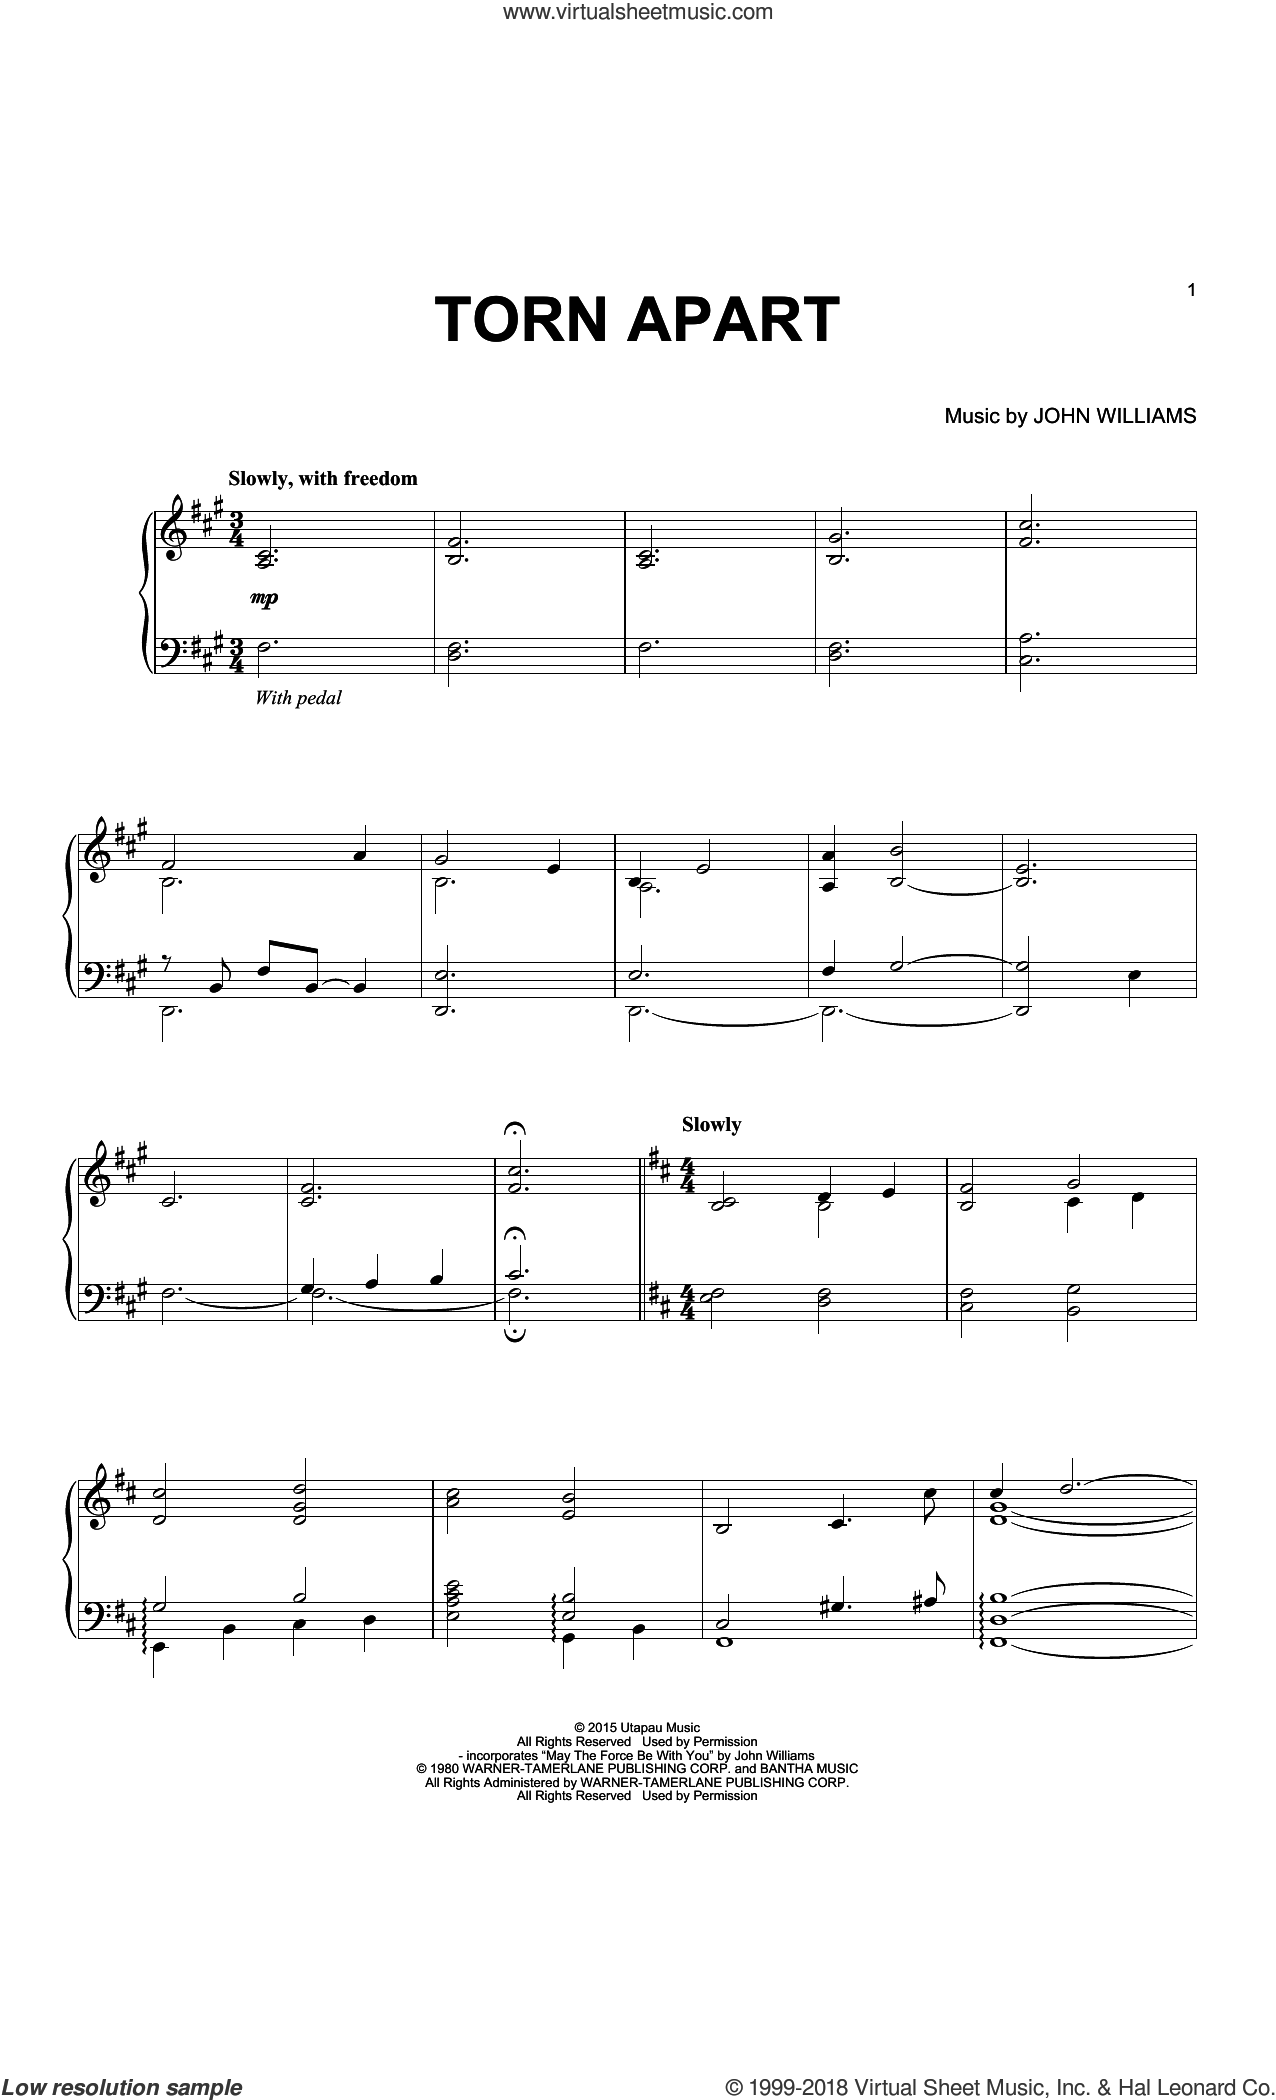 Torn Apart sheet music for piano solo by John Williams, intermediate skill level